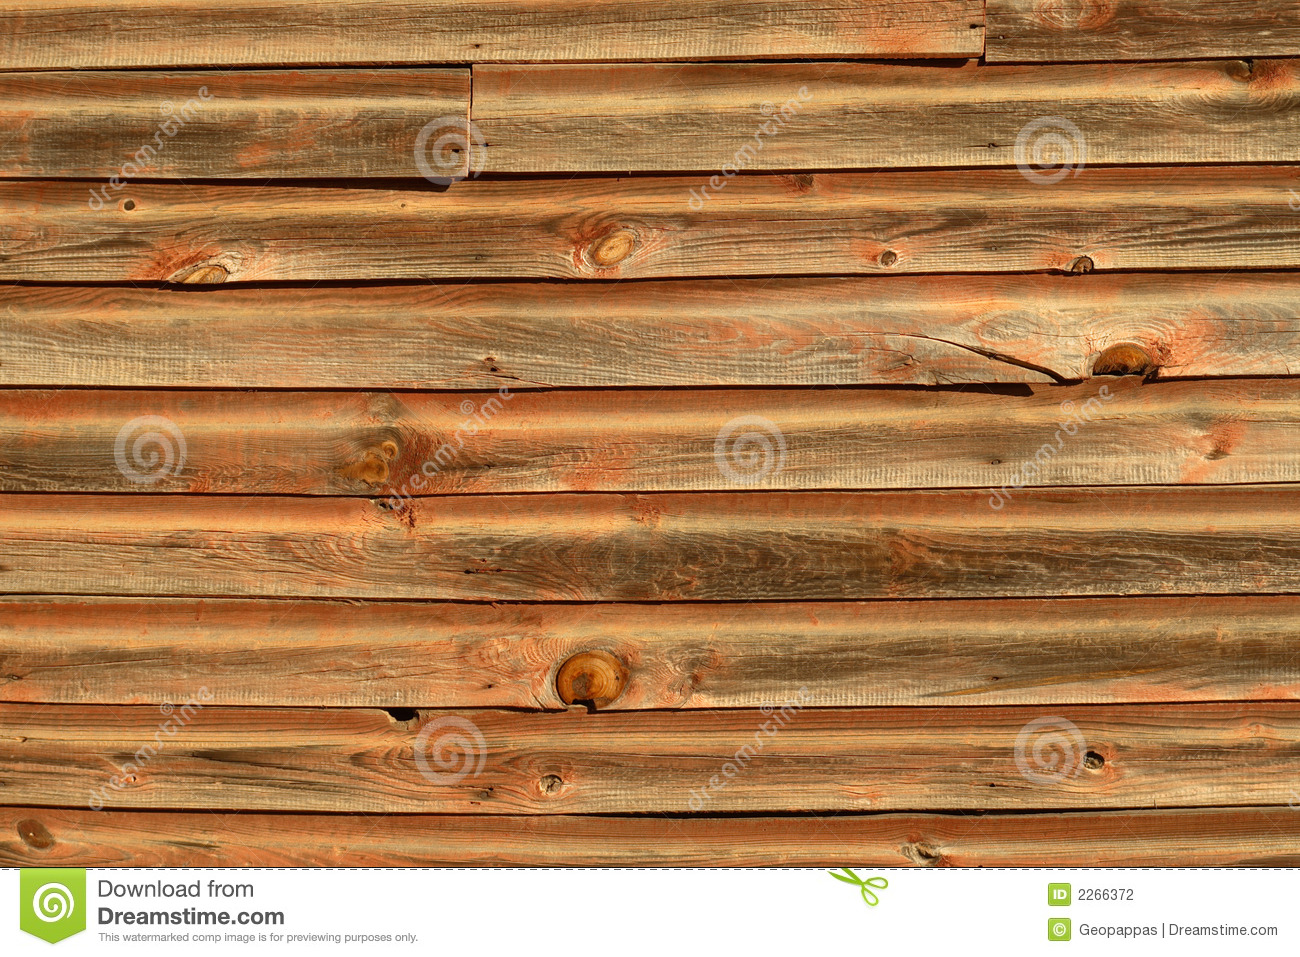 home depot siding prices with Stock Photography Old Wood Siding Background Image2266372 on Choosing Right Laminate Flooring Colors Is A Key To The Successful Design Of The Place You Live In likewise Siding together with Heritage Erie Drystack Corners Rock Panel Siding moreover Wood Storage Sheds Bald Eagle Barns Metal Roofing besides Diy Shiplap Wall For Under 40.